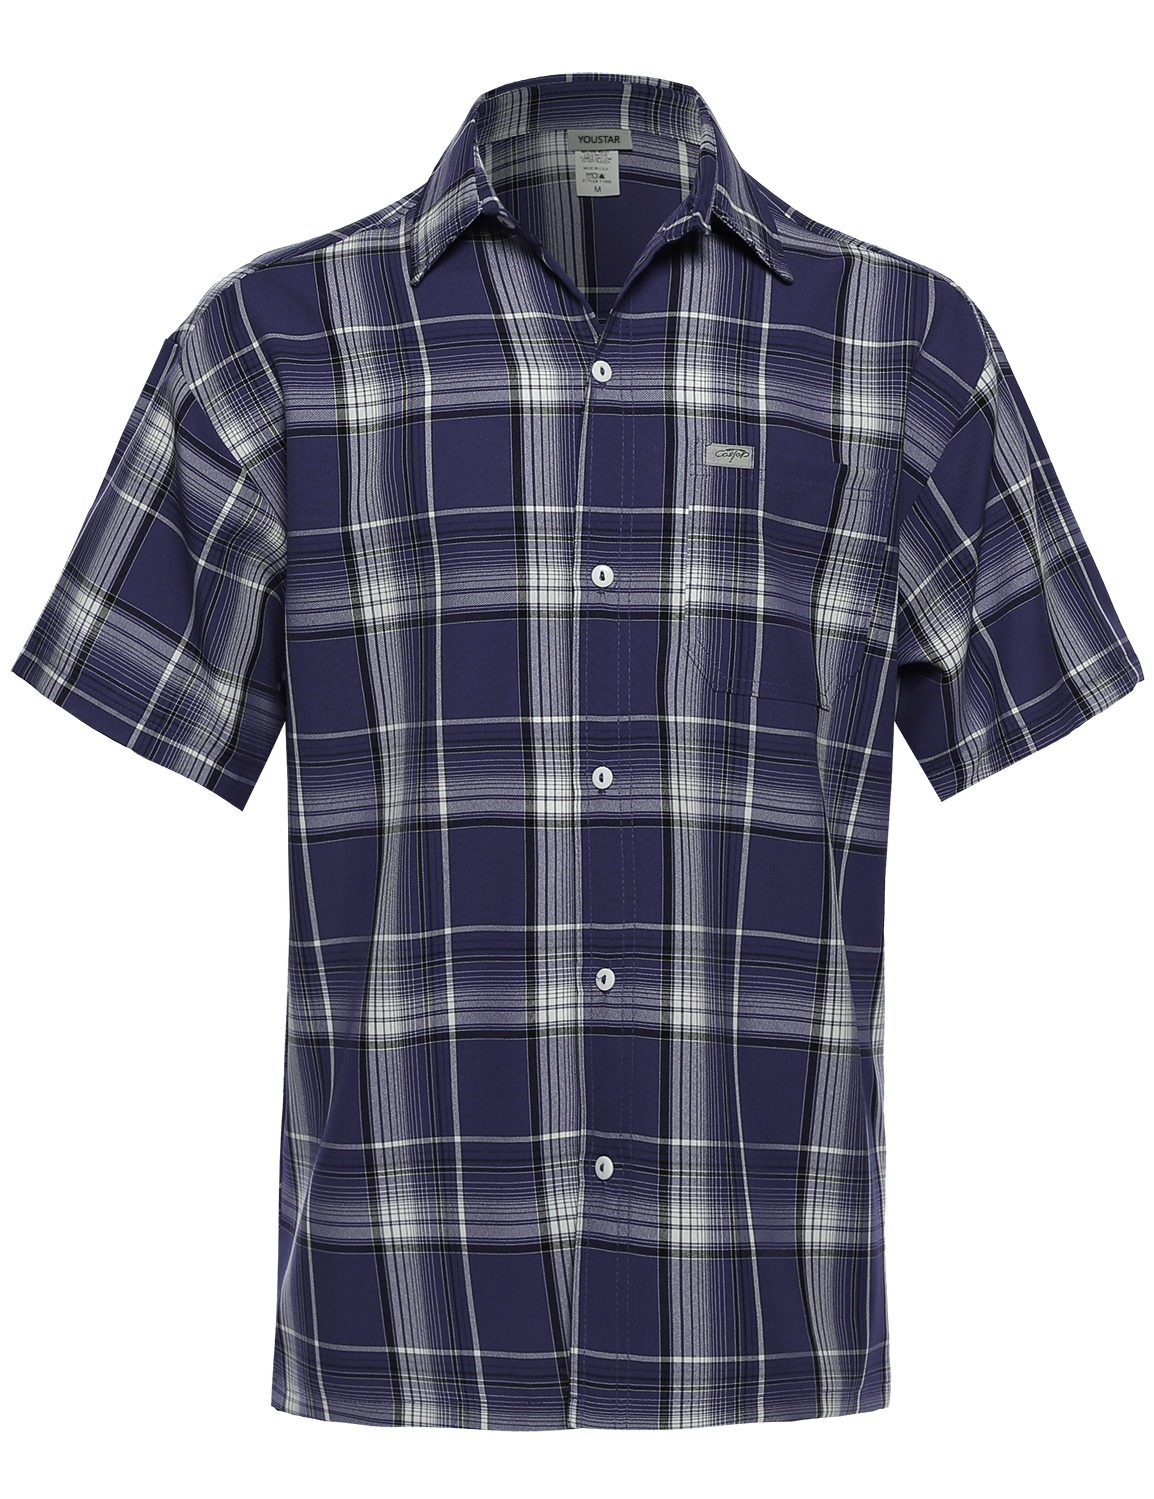 Fashionoutfit men 39 s loose fit plaid checkered short sleeve for Top mens button down shirts